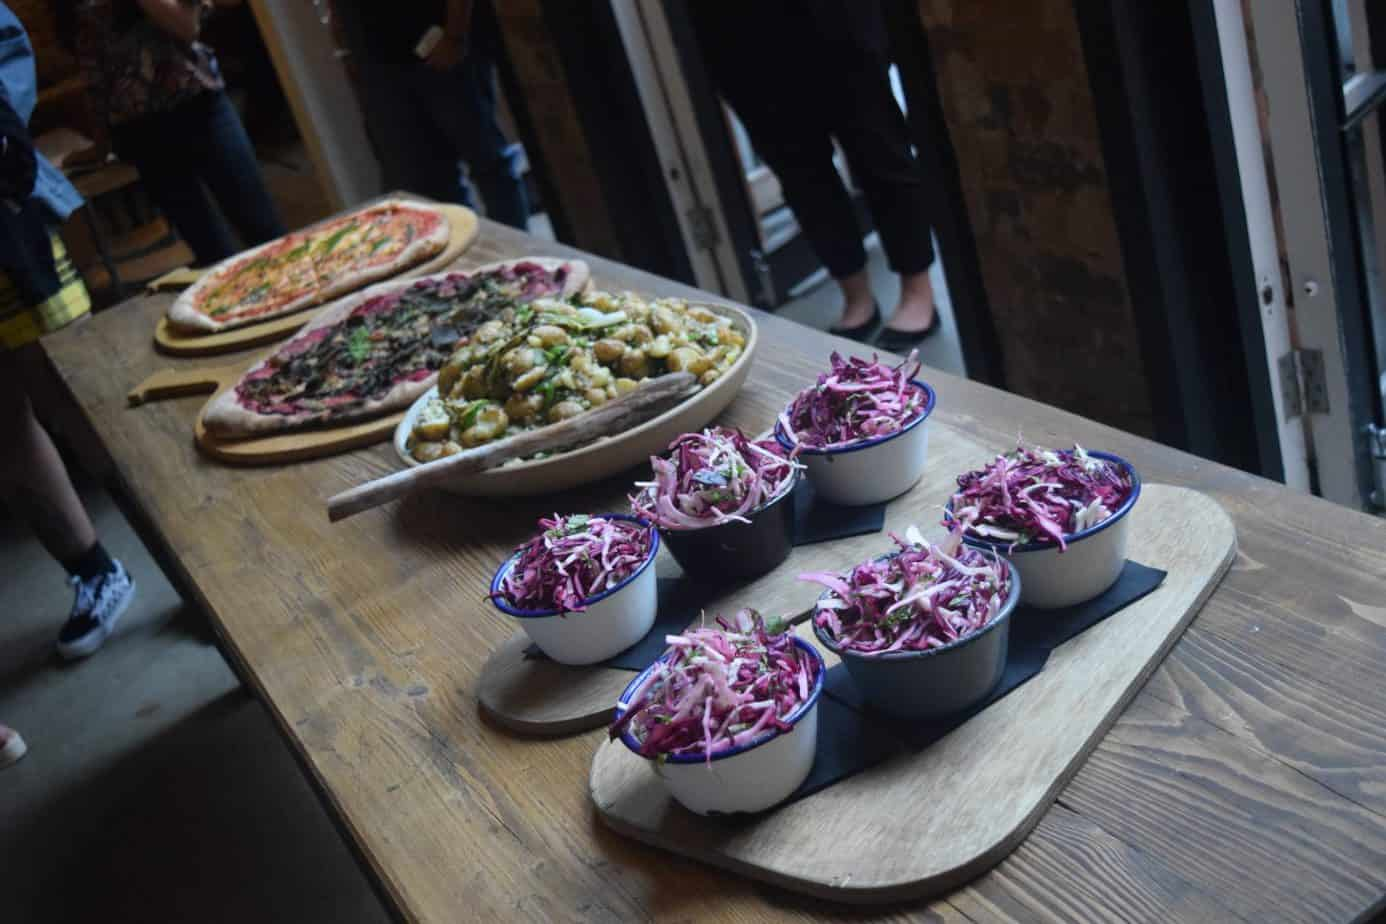 The food offered at Yorks Cafe during our Giffgaff Gameplan event in Birmingham